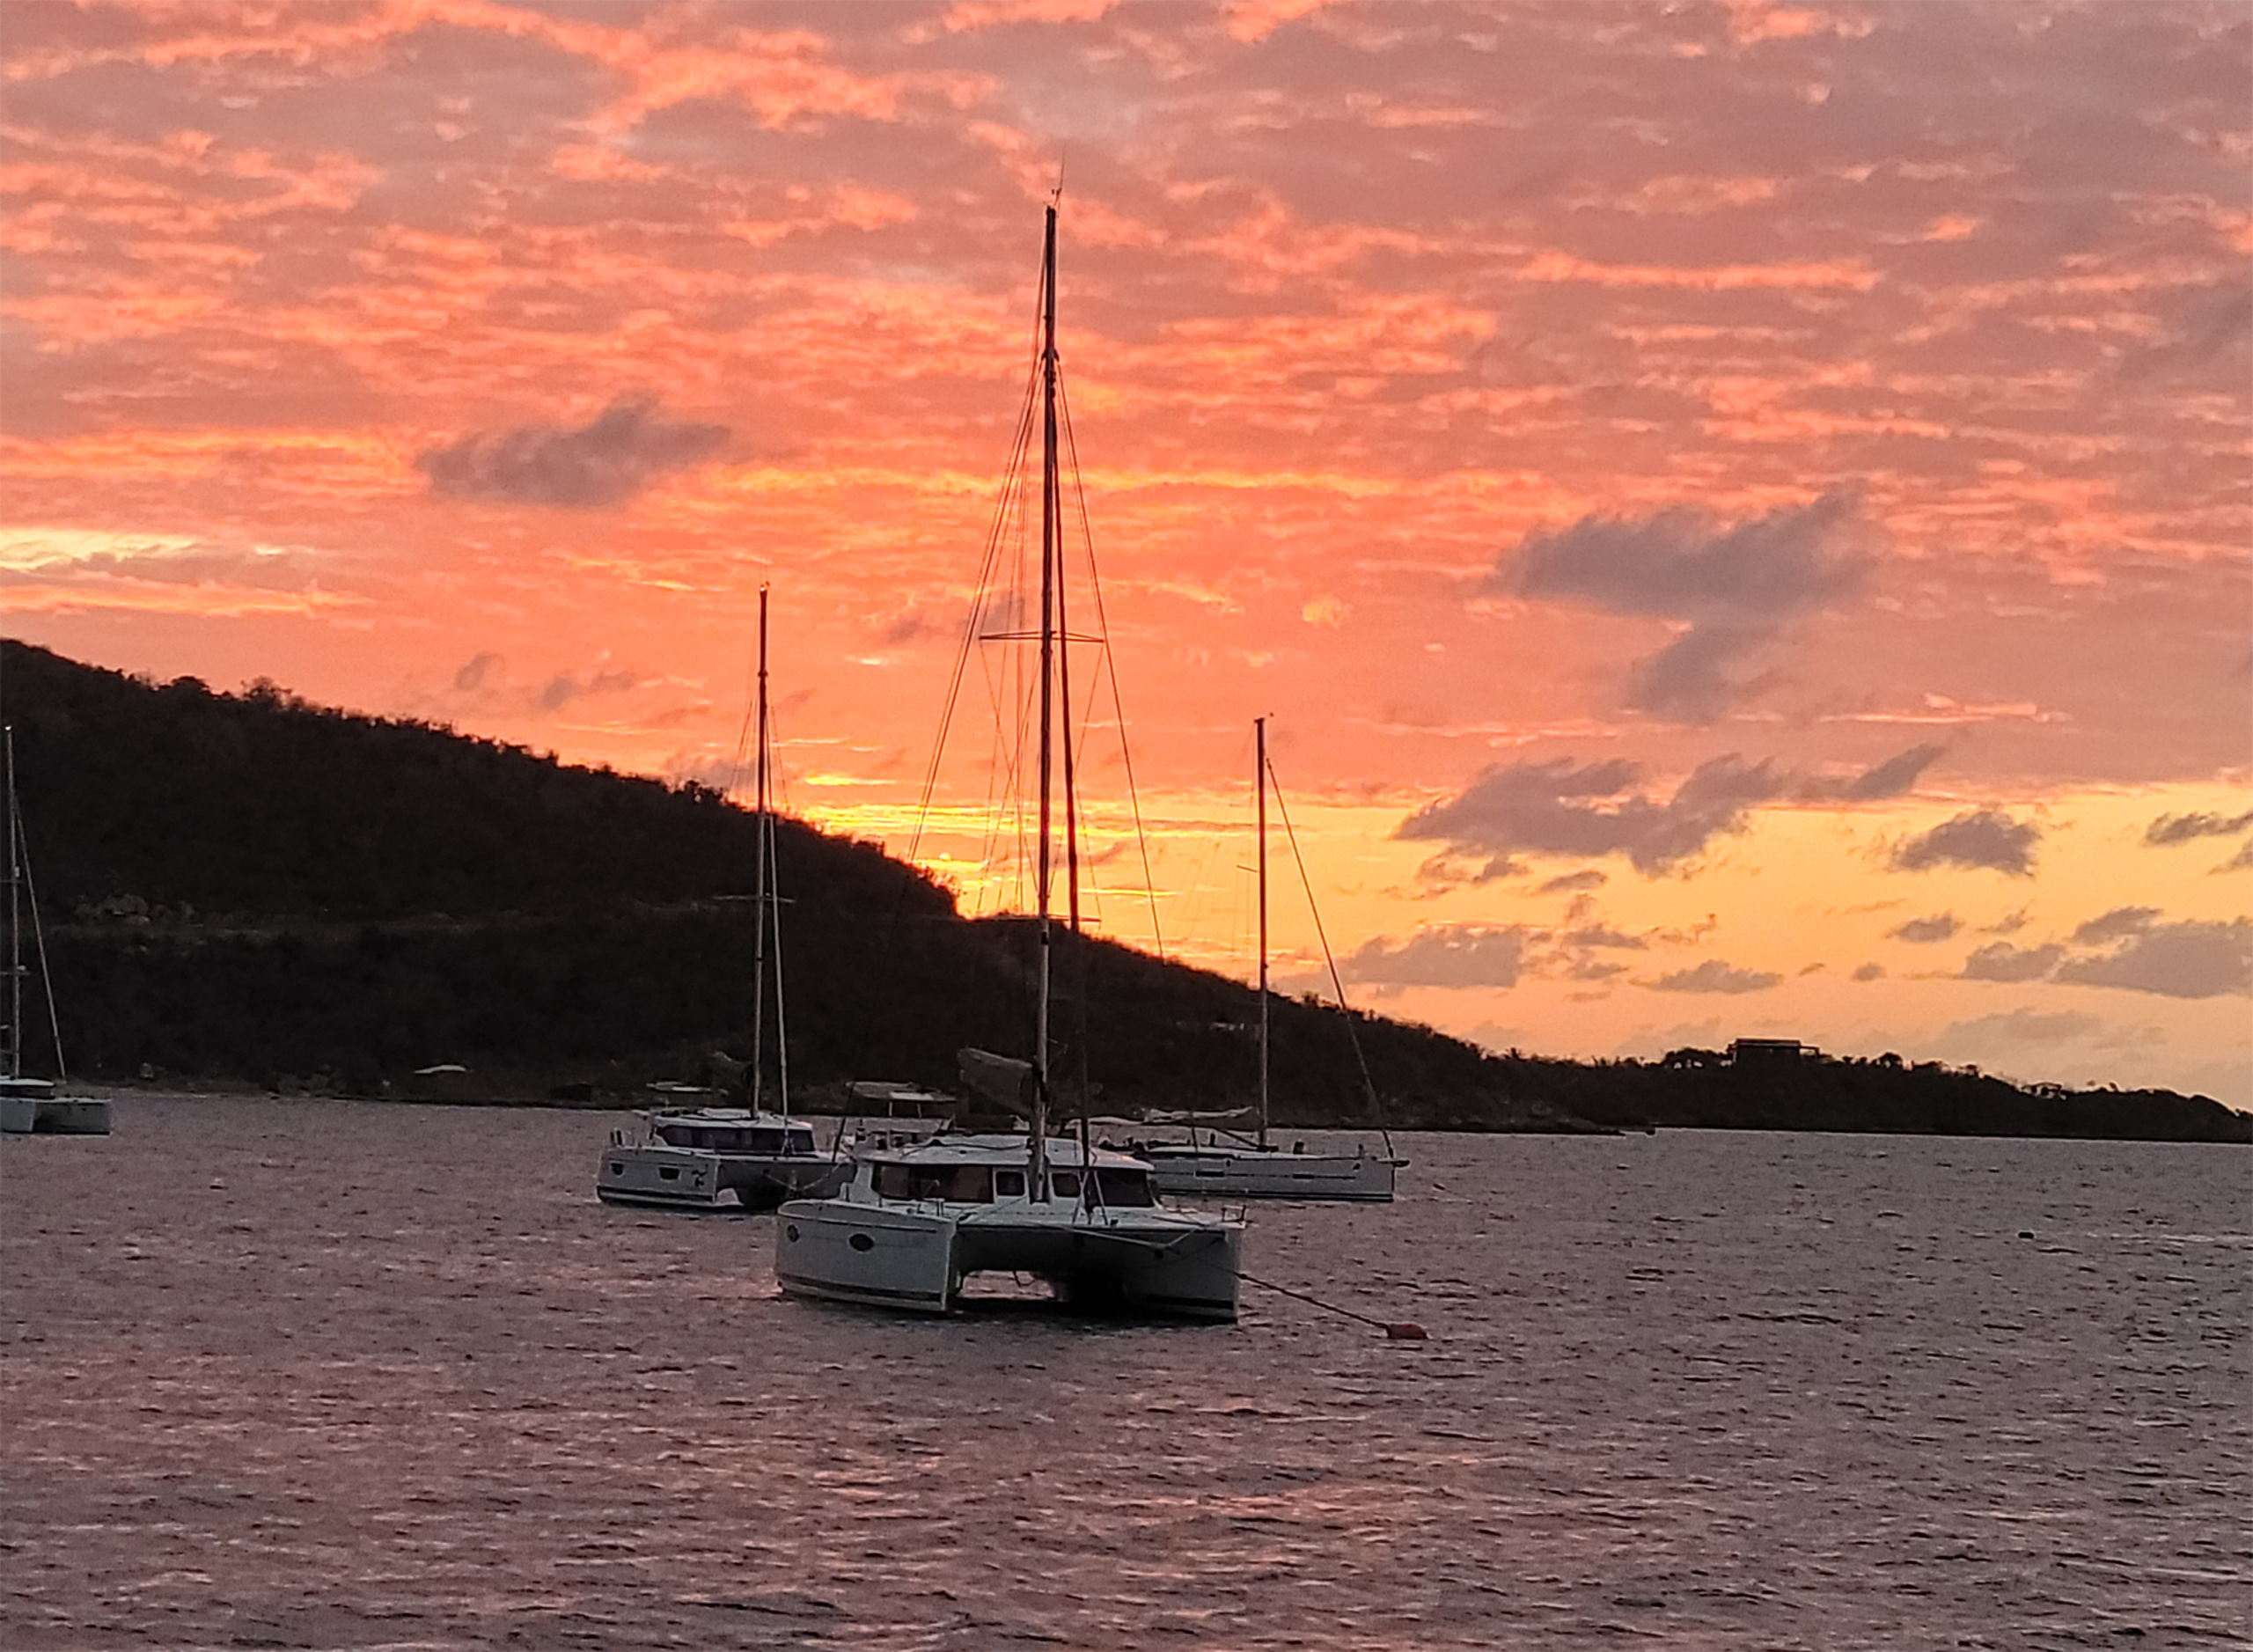 The S21 managed to get some great sunset shots on Leverick Bay.